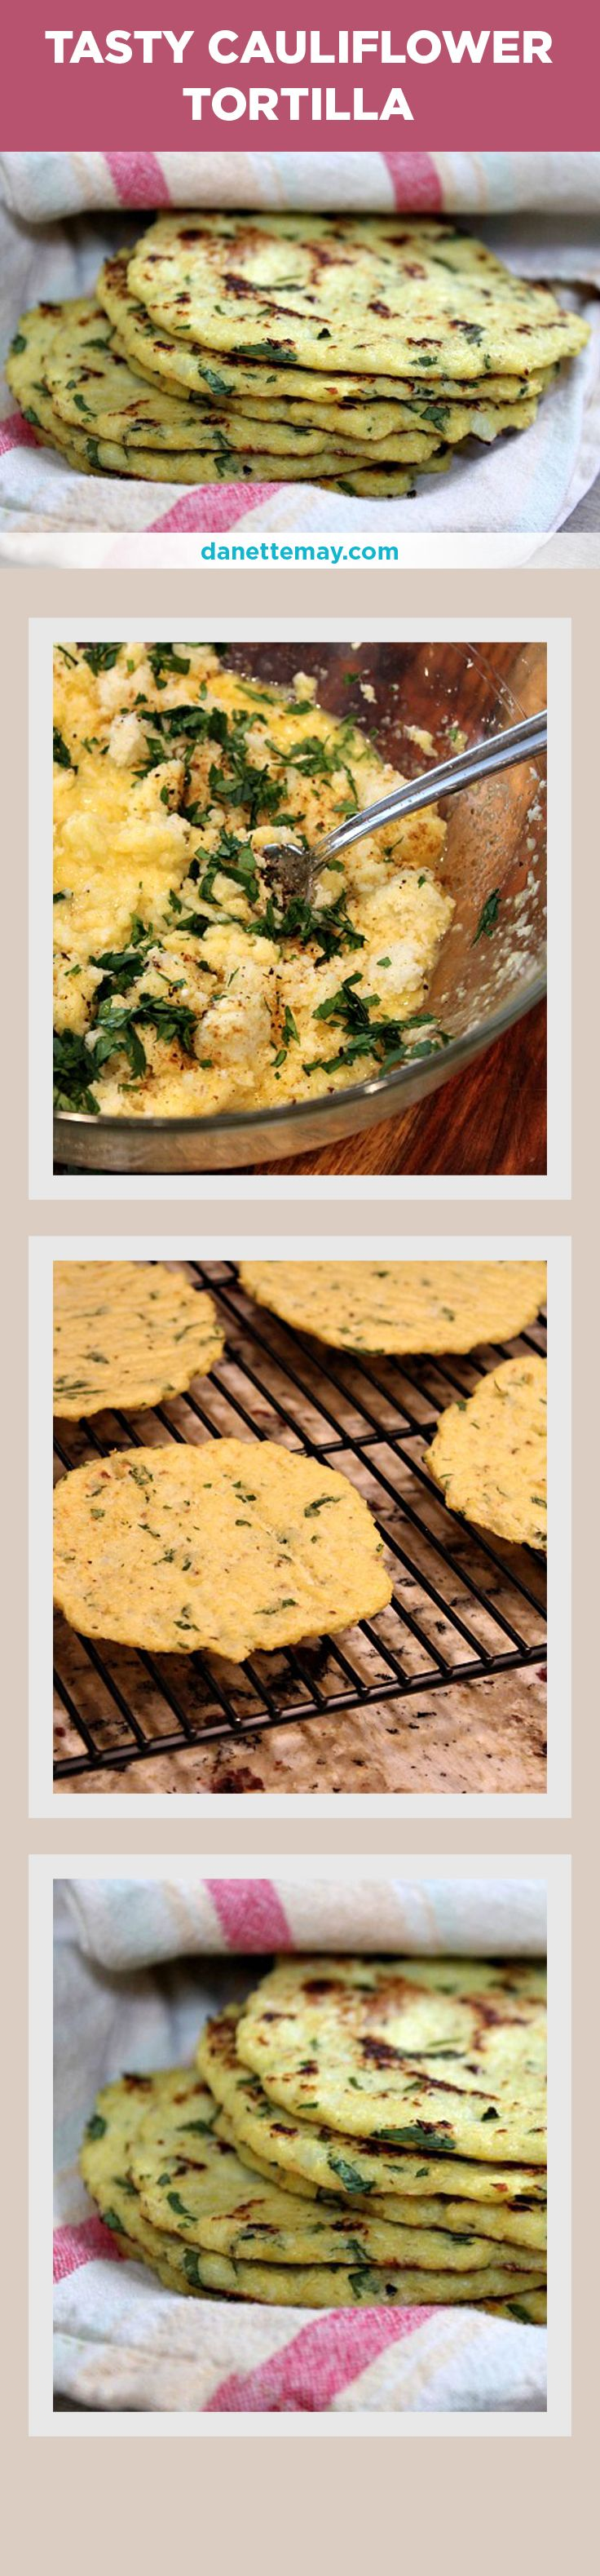 how to make healthy tortillas